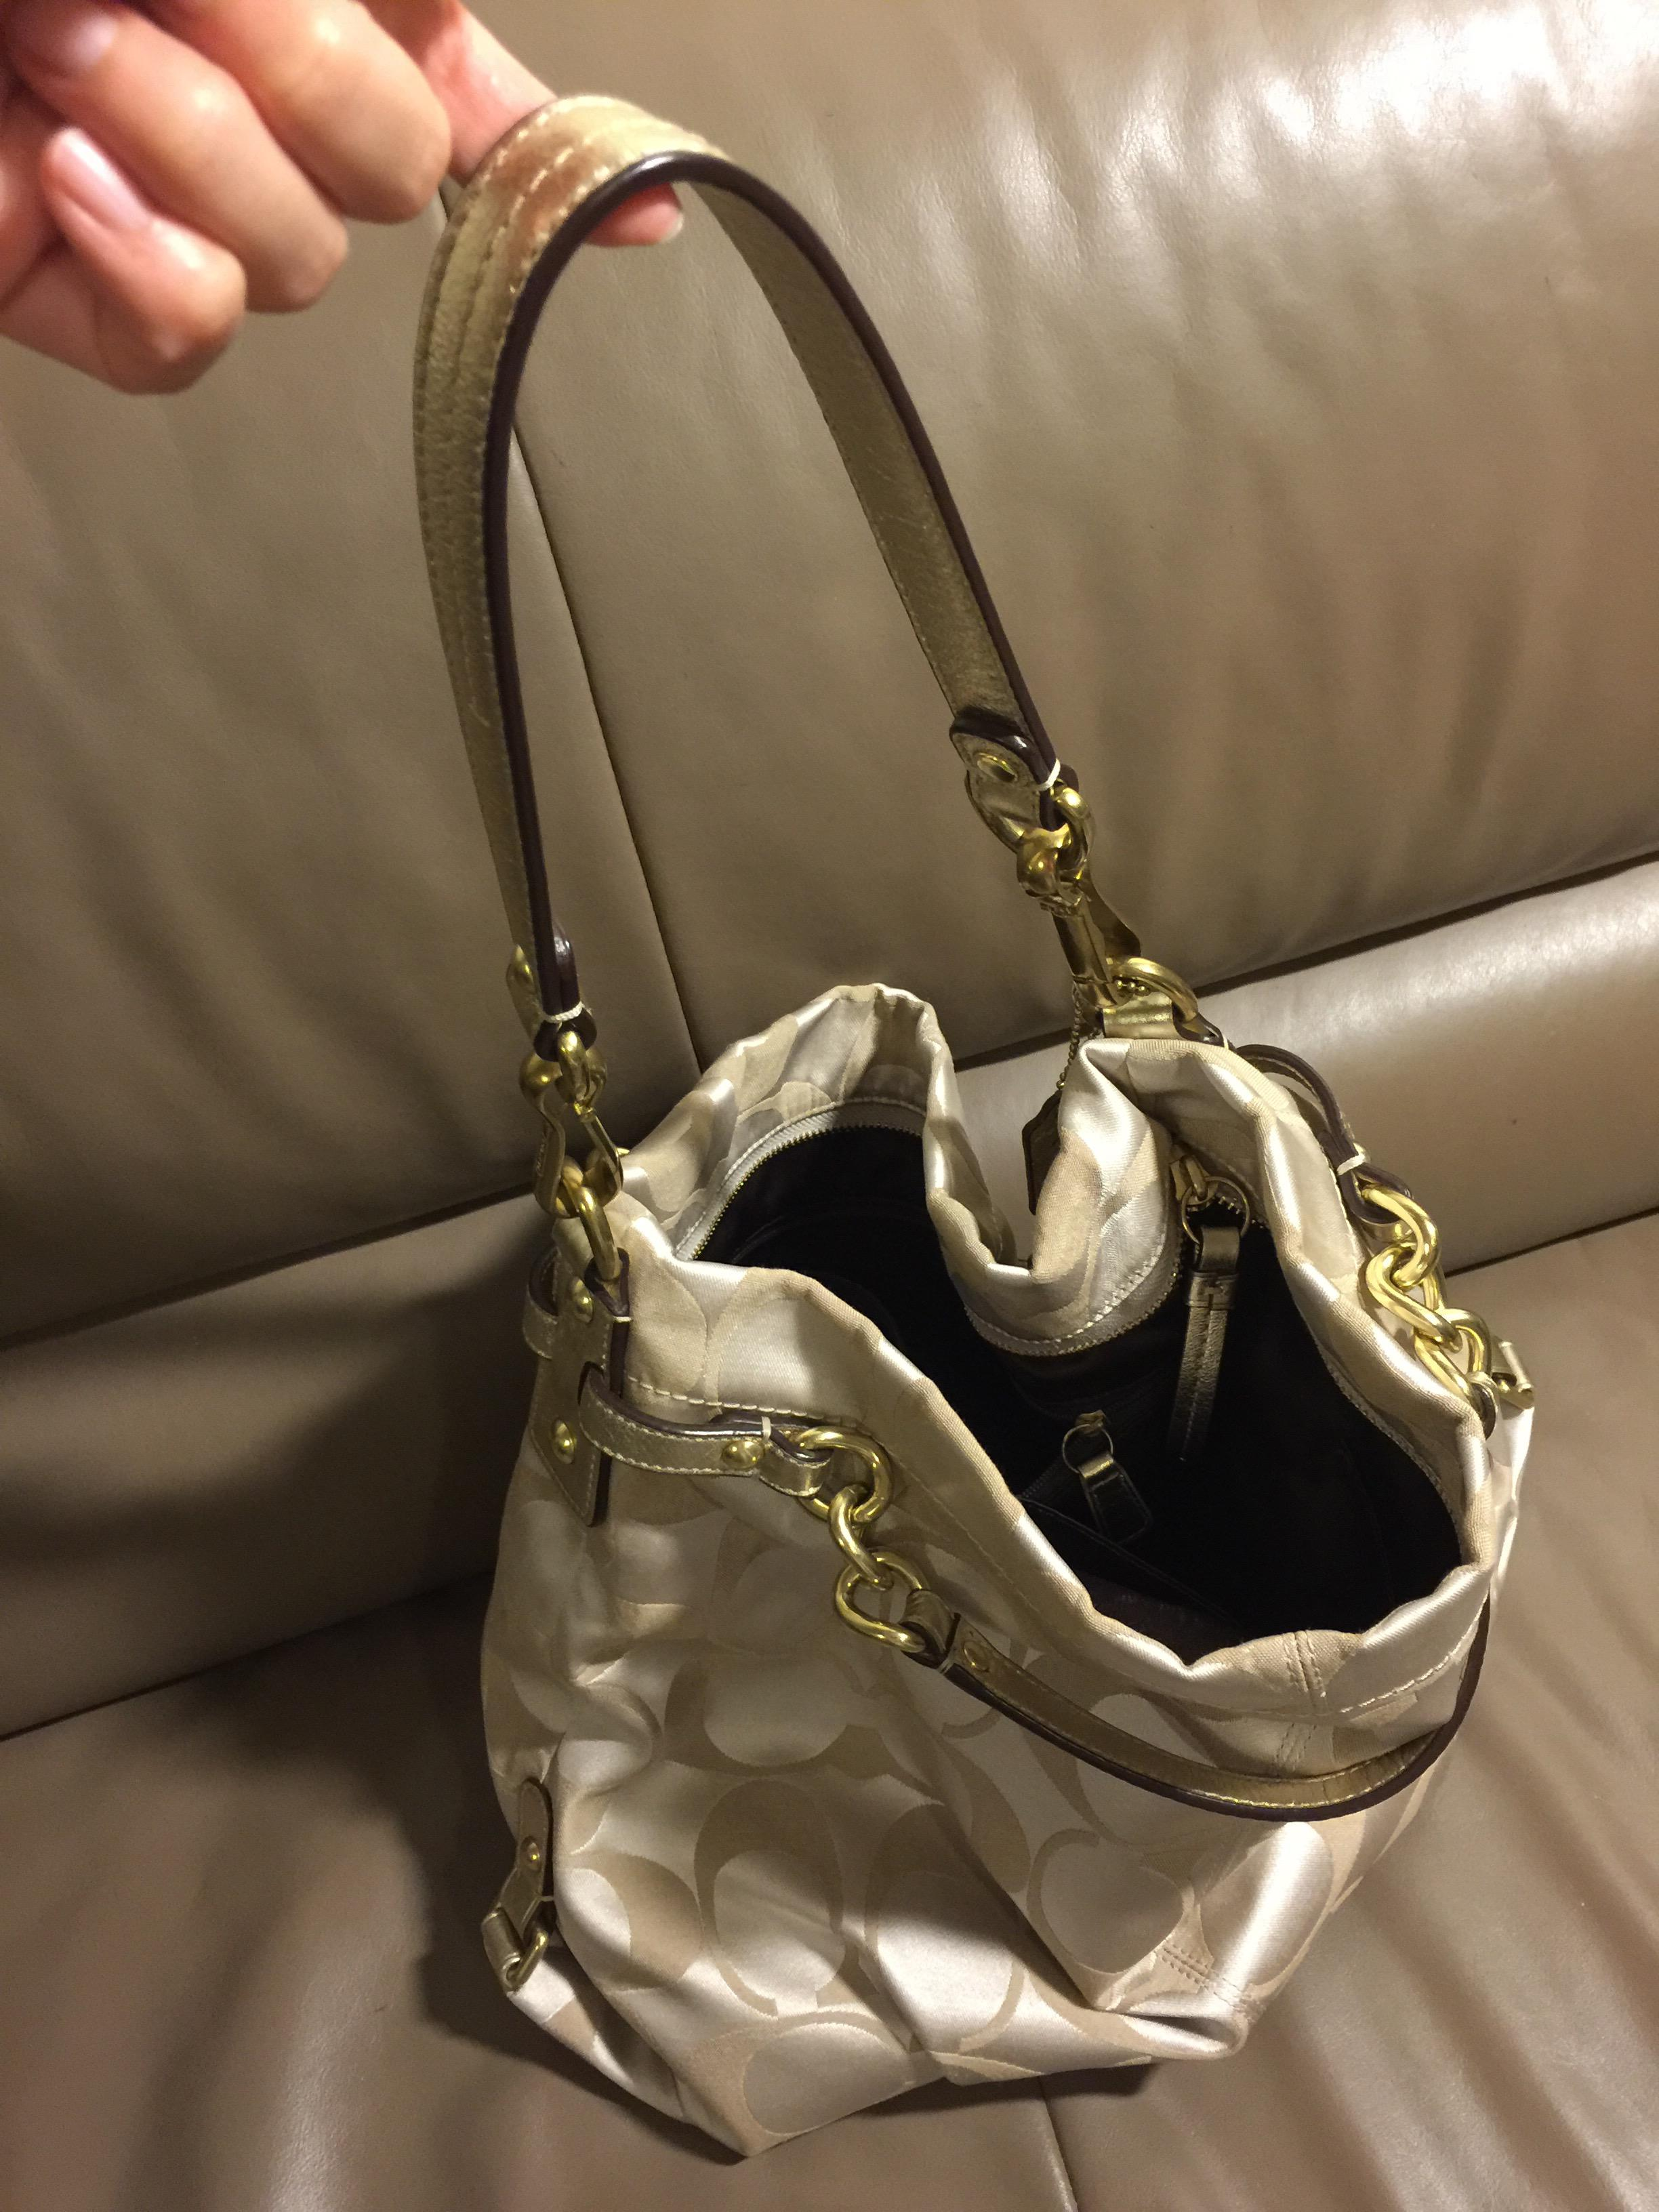 905889670b3f ... bags outlet COACH F36716 SKHMA luxury signature cotton ew Hobo 2-WAY  ... COACH NOMAD HOBO IN GLOVETANNED LEATHER ... 可手挽亦可上膊 Original price ...